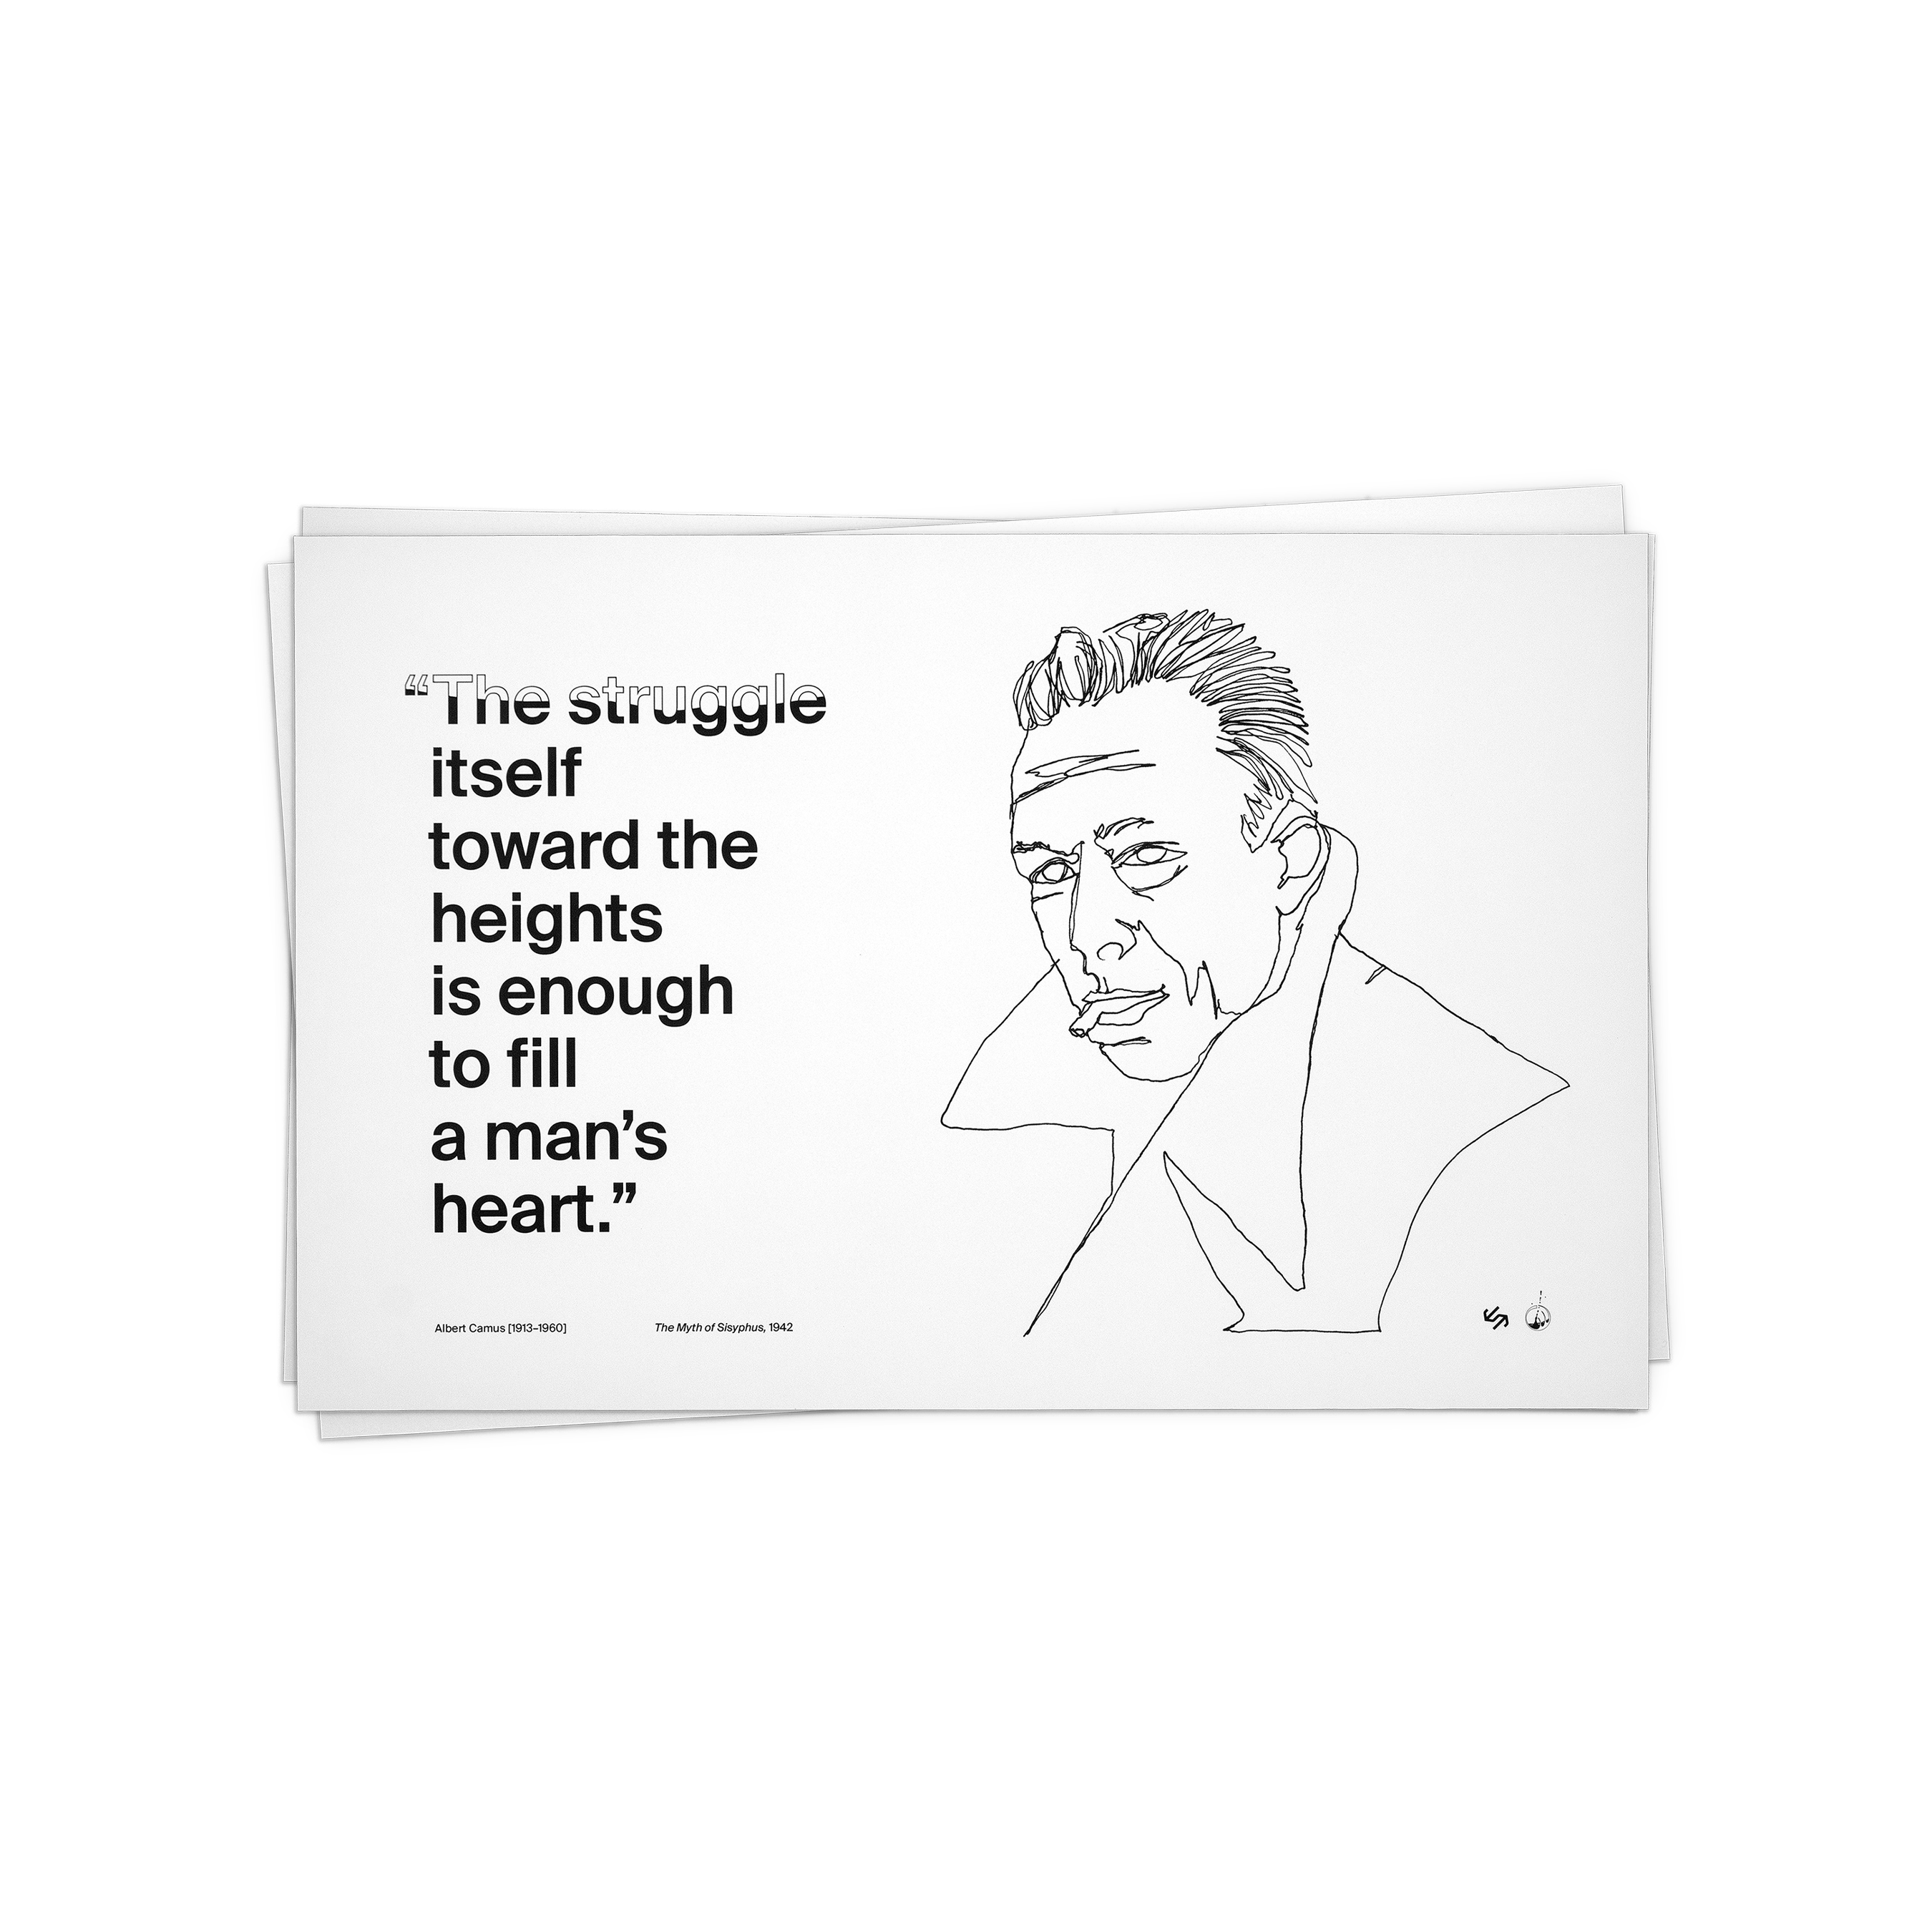 11 x 17 fine art prints as part of a three-piece series. Printed on premium matte paper. Featuring quotes from and illustrations of Albert Camus, Søren Kierkegaard, and Charles Bukowski. Made to order. Does not include frame.